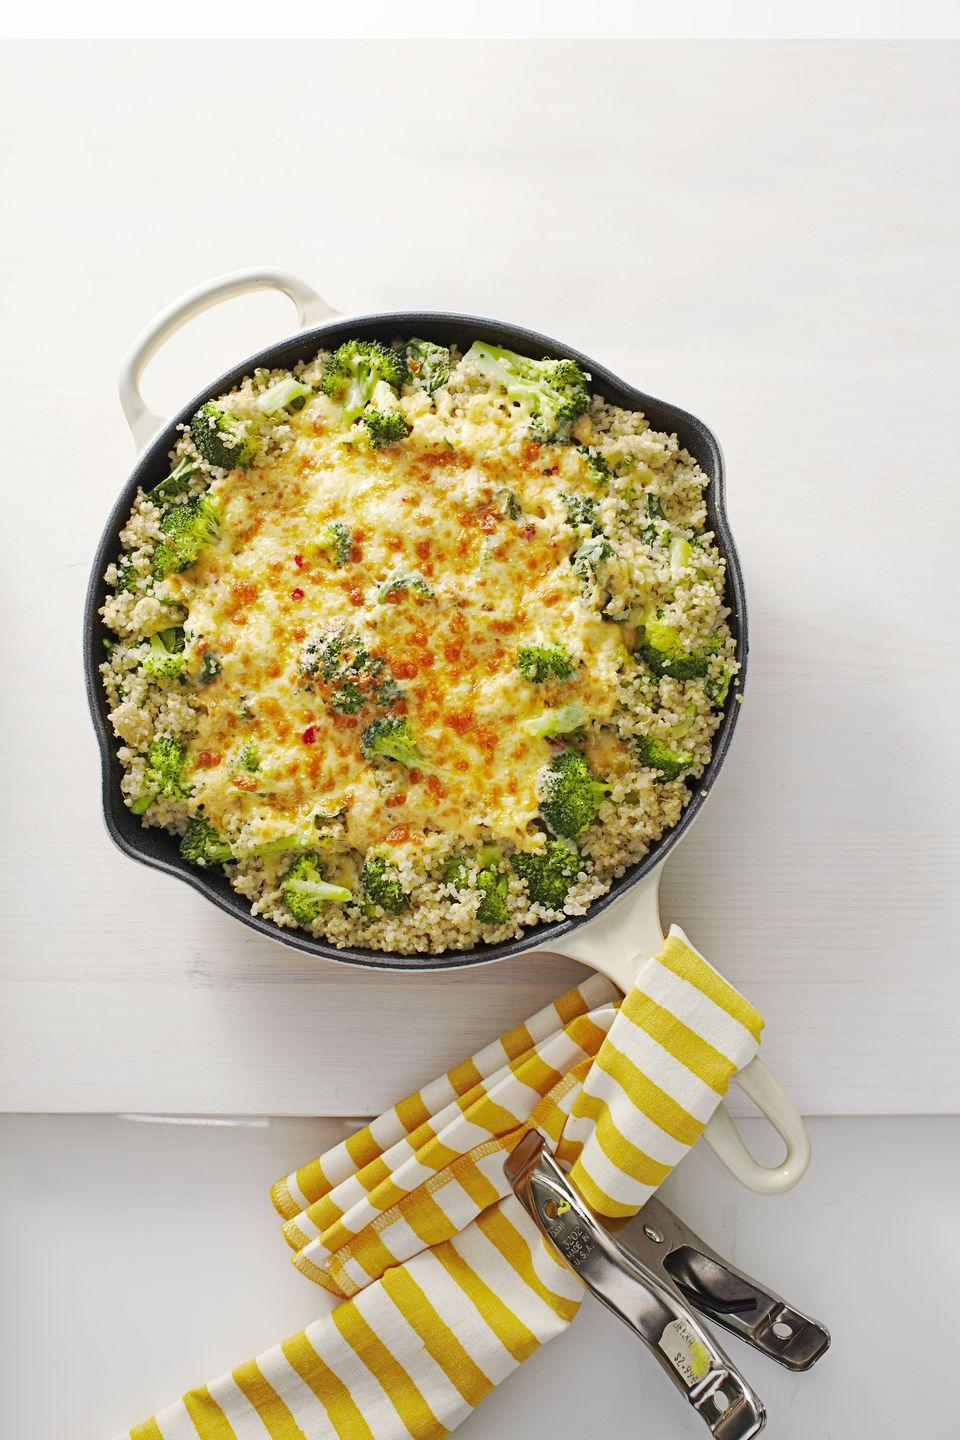 """<p>If you're looking to make a smart swap for classic <a href=""""https://www.goodhousekeeping.com/food-recipes/easy/g3687/best-macaroni-and-cheese-recipes/"""" rel=""""nofollow noopener"""" target=""""_blank"""" data-ylk=""""slk:mac and cheese"""" class=""""link rapid-noclick-resp"""">mac and cheese</a>, this cheesy broccoli quinoa bake is perfect for you. You'll feel great knowing its just under 350 calories for a few big spoonfuls.</p><p><a href=""""https://www.goodhousekeeping.com/food-recipes/a16335/baked-pepper-jack-quinoa-skillet-recipe-ghk0115/"""" rel=""""nofollow noopener"""" target=""""_blank"""" data-ylk=""""slk:Get the recipe for Baked Pepper Jack Quinoa Skillet »"""" class=""""link rapid-noclick-resp""""><em>Get the recipe for Baked Pepper Jack Quinoa Skillet »</em></a></p>"""